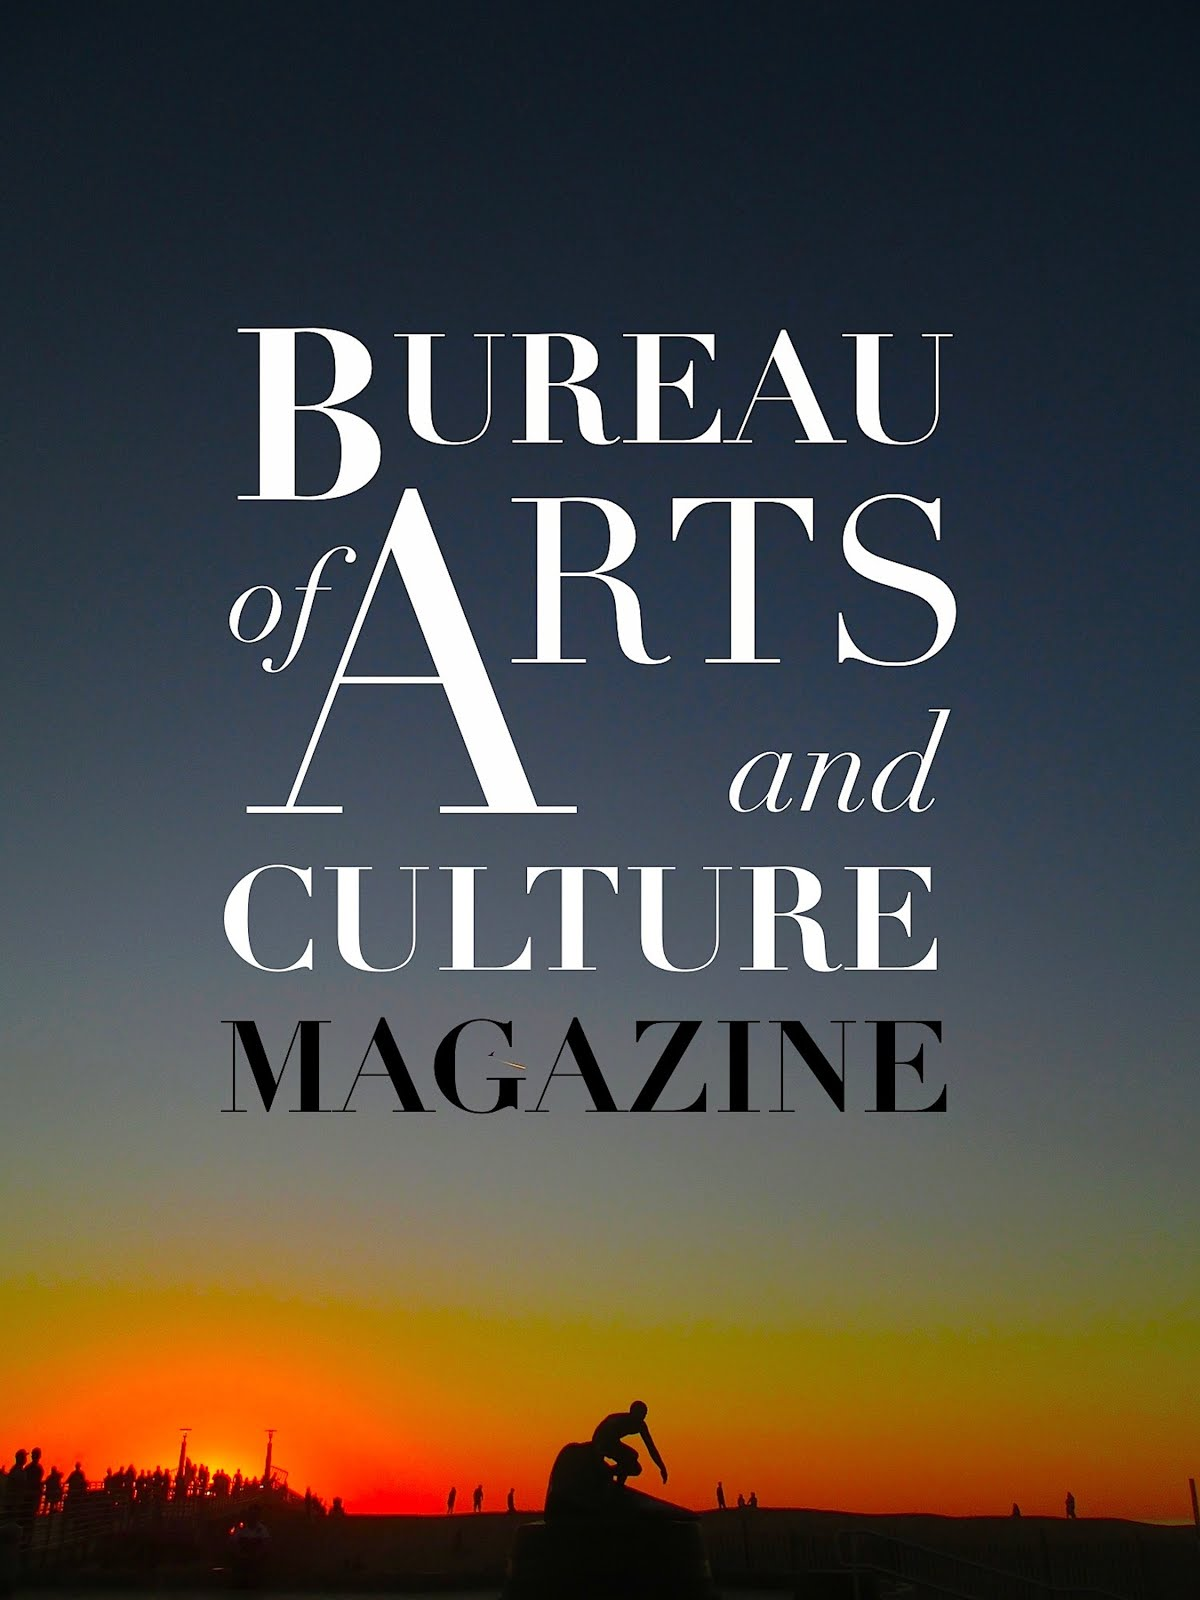 GET FREE BACK EDITIONS Of BUREAU MAGAZINES NOW